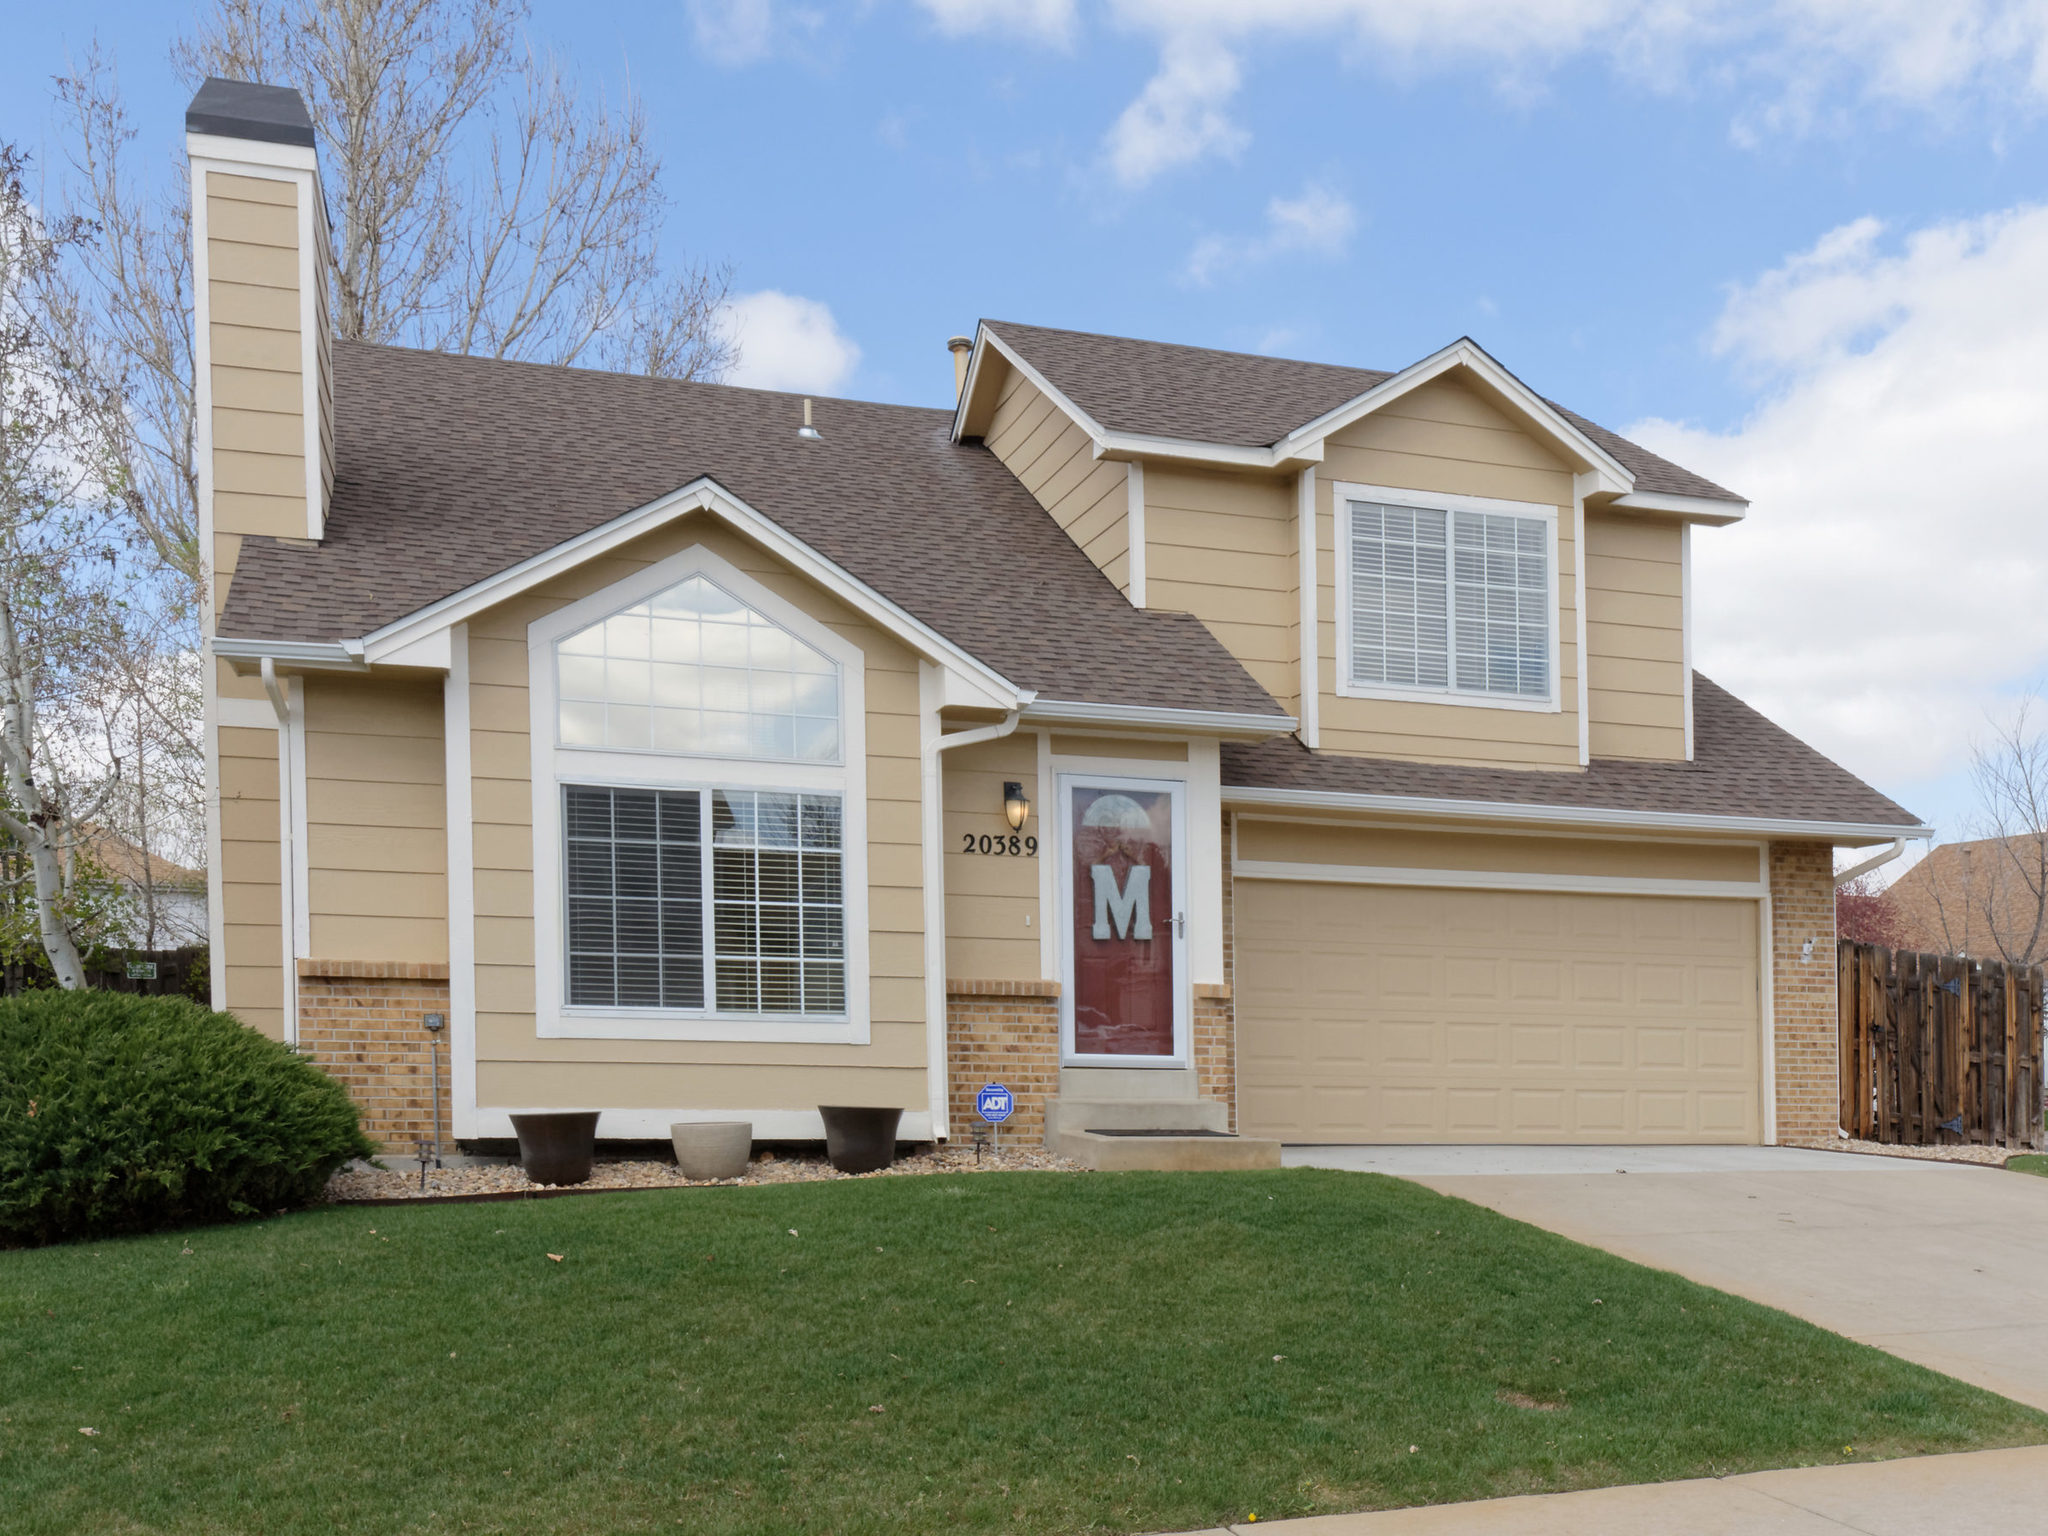 20389 E Powers Place-MLS_Size-001-36-Welcome Home-2048x1536-72dpi